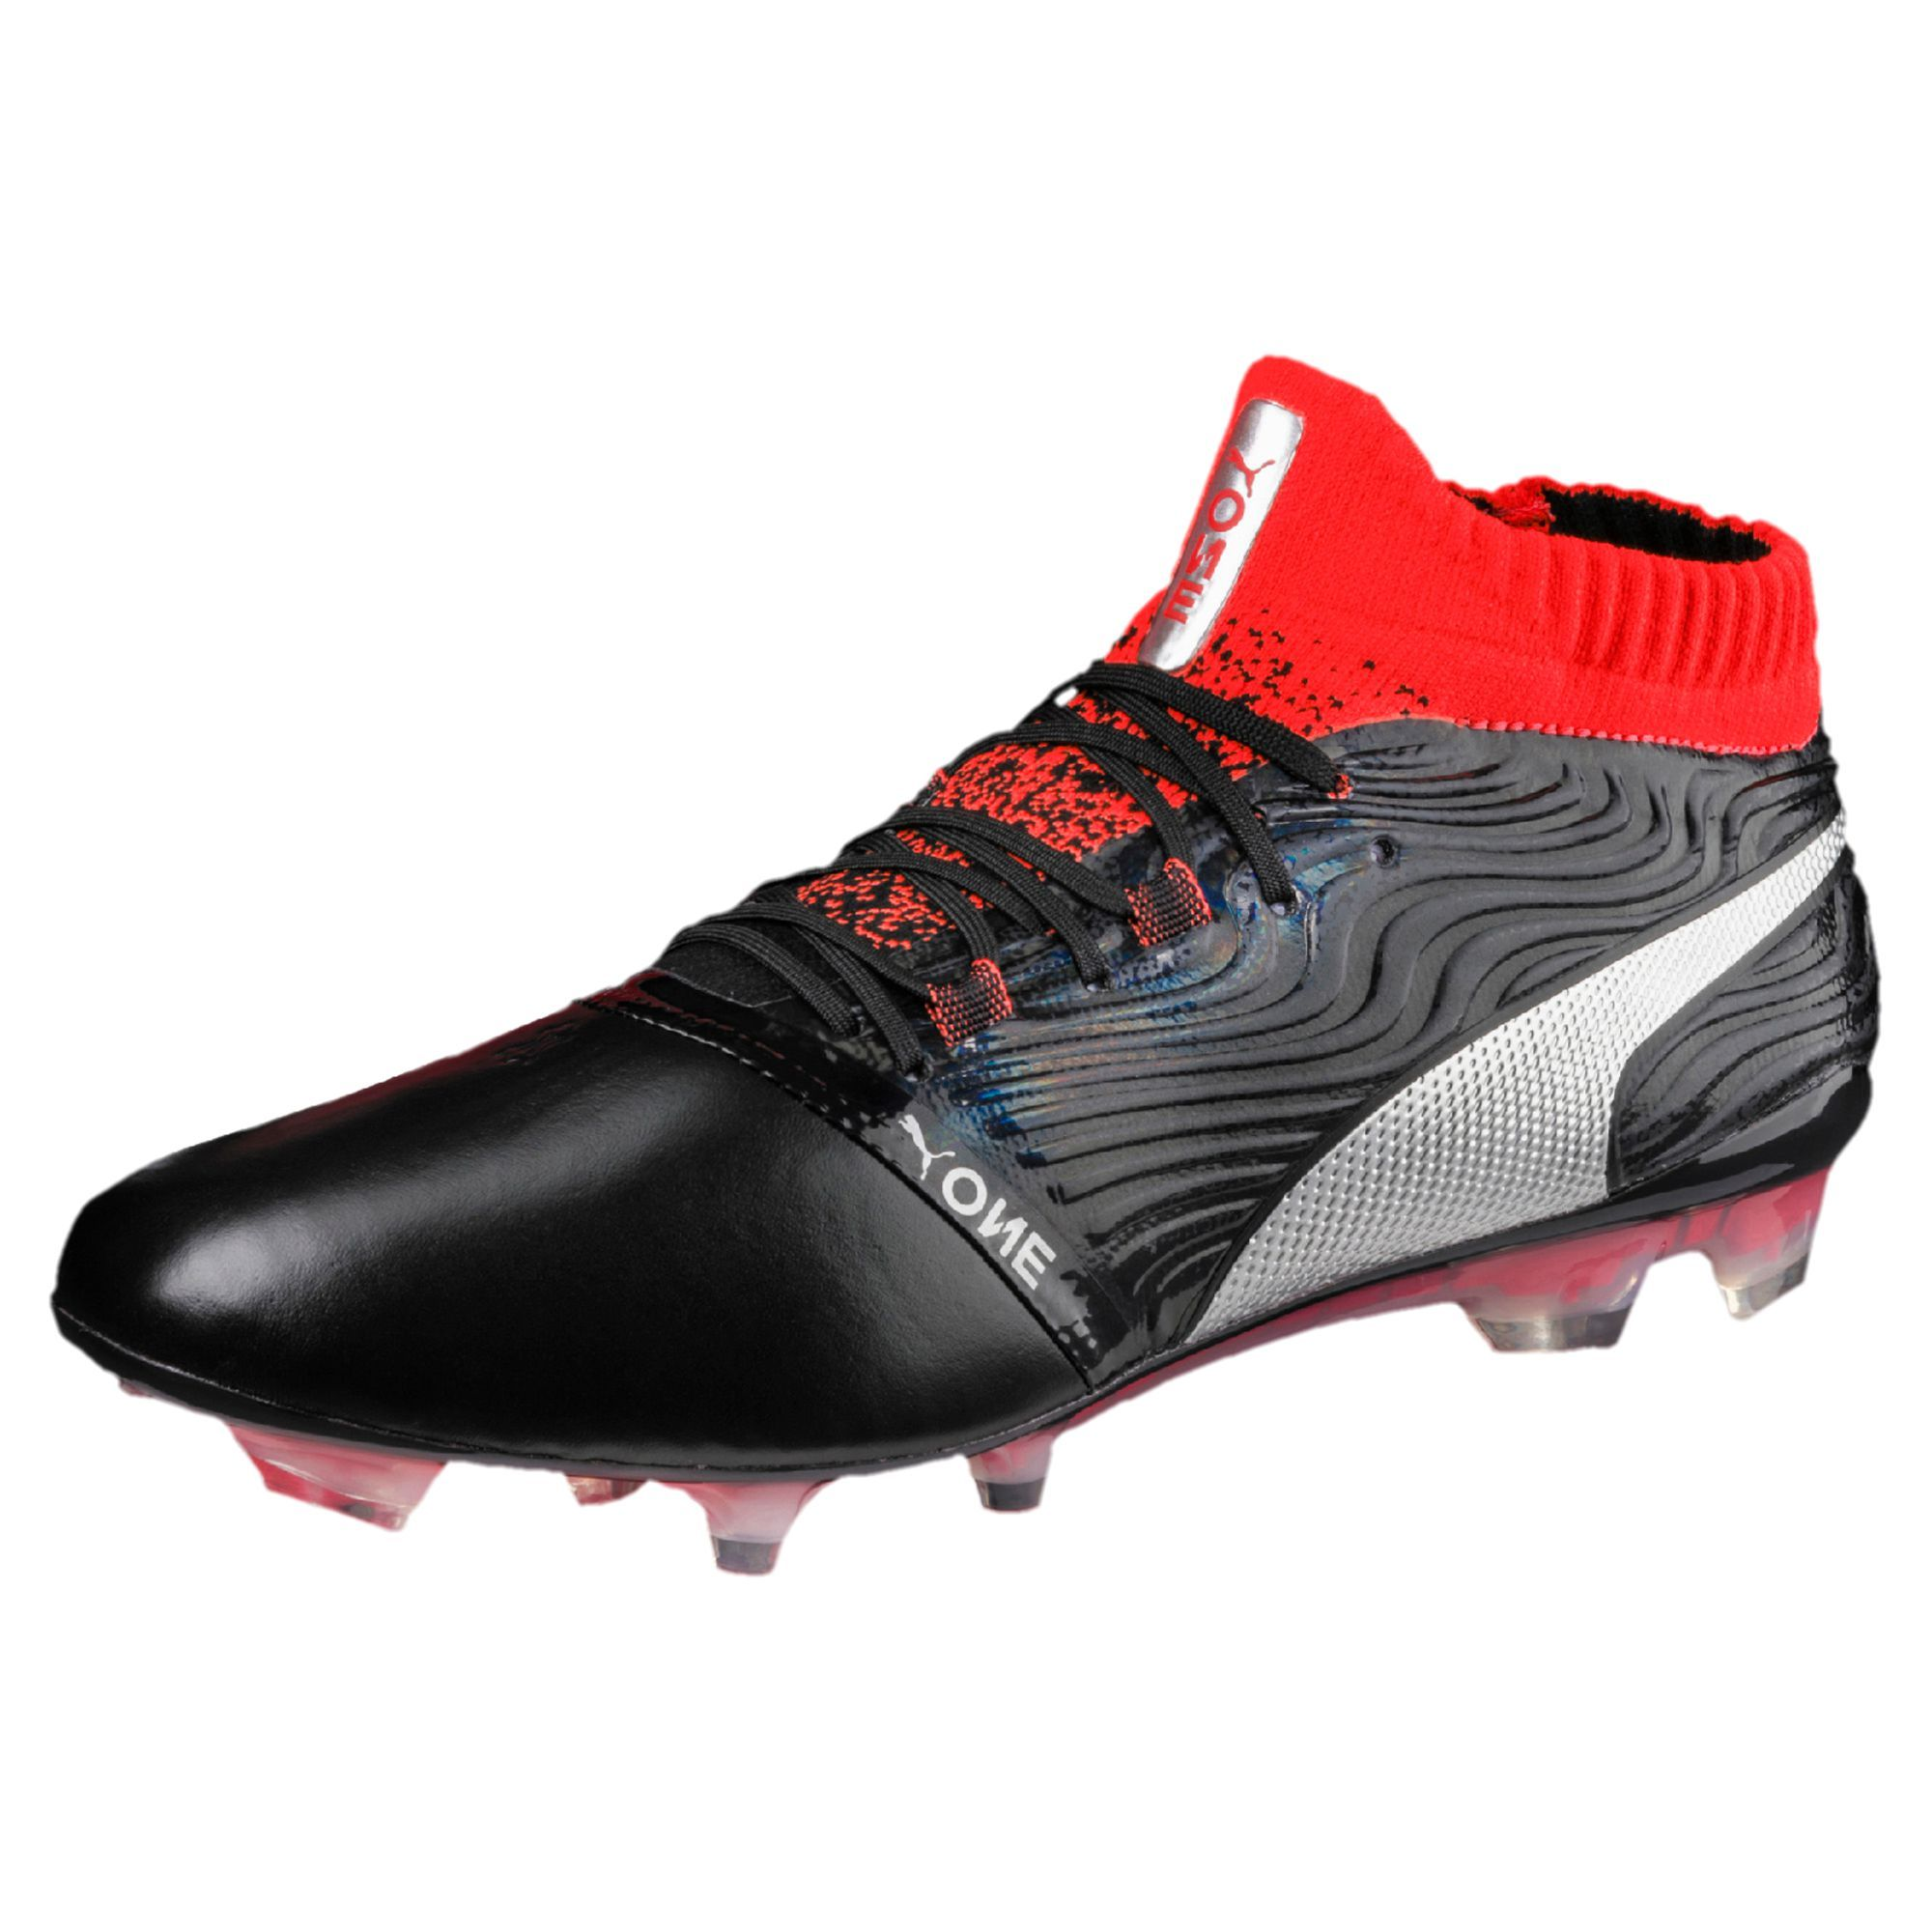 dbfc5c5627 #football #soccer #futbol Puma One 18.1 FG - Puma Black / Puma Silver / Red  Blast